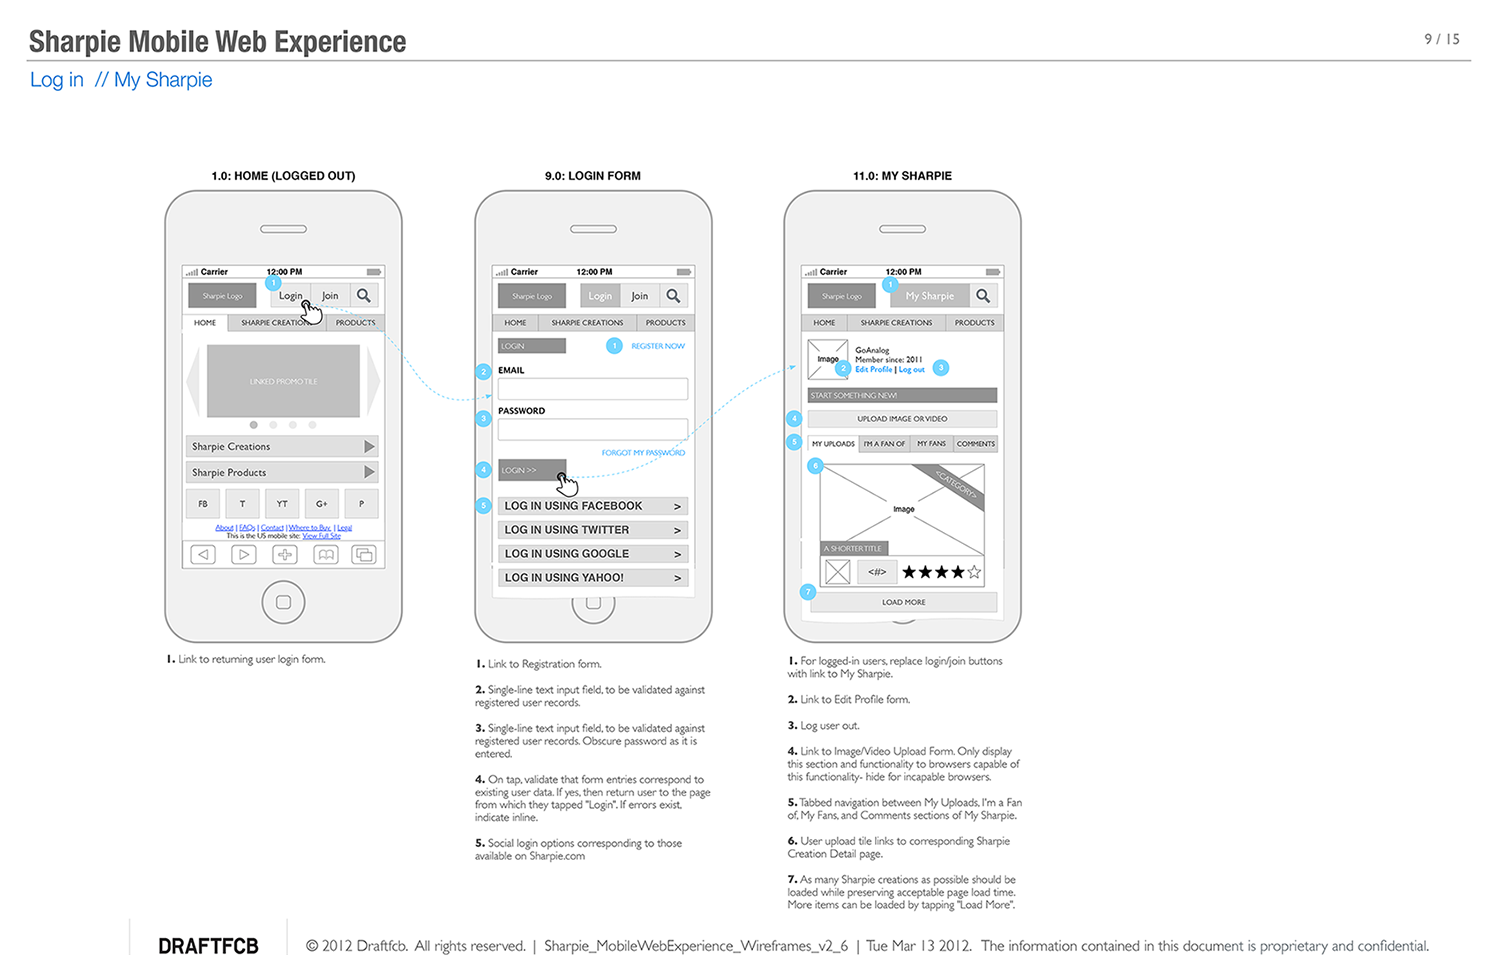 Sharpie_Mobile_Wireframes_v2_6-15_0008_9.png